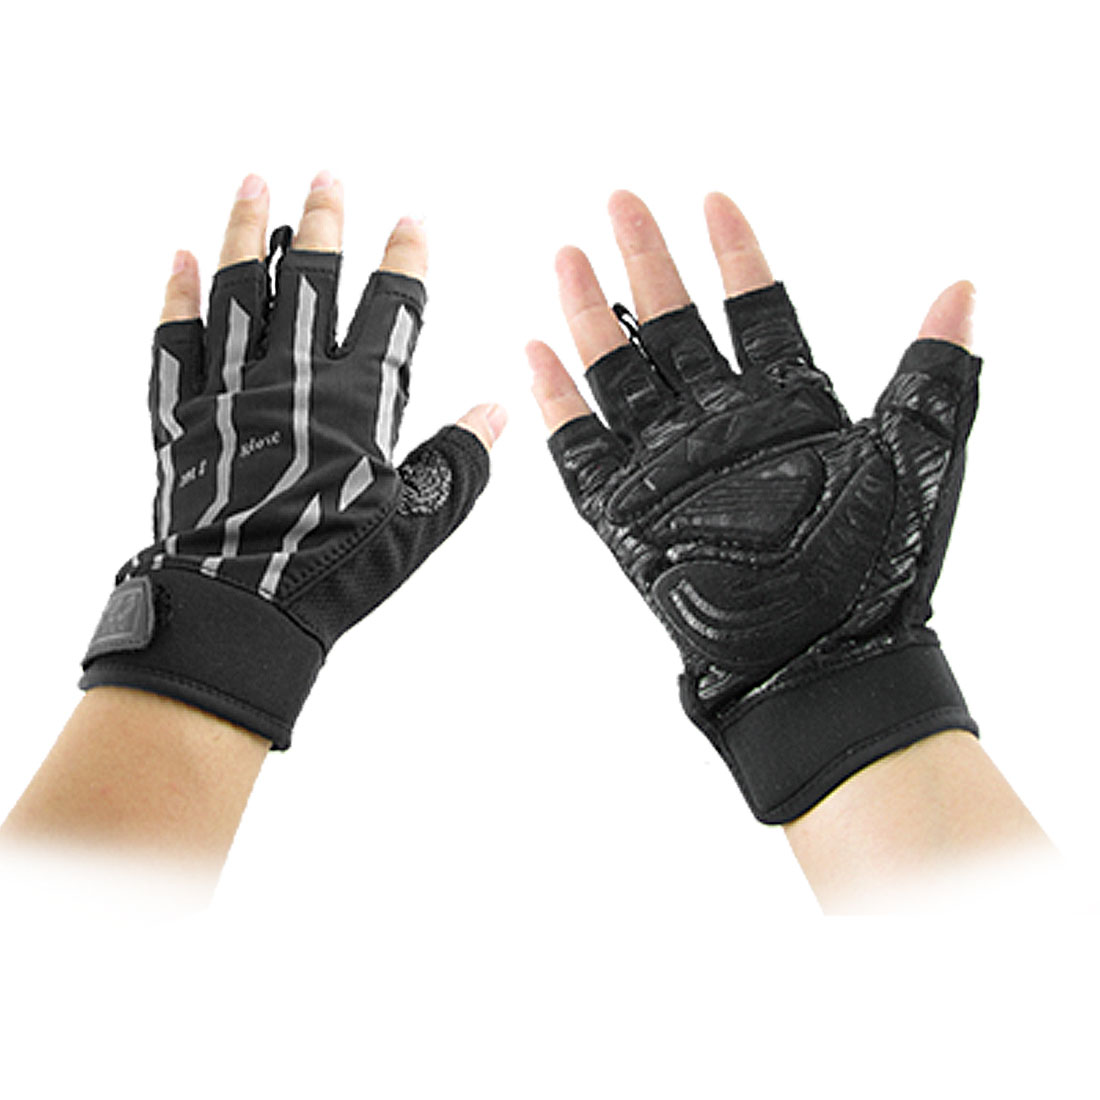 Man Black Gray Mountain Bike Driving Fingerless Gloves 2 Pcs